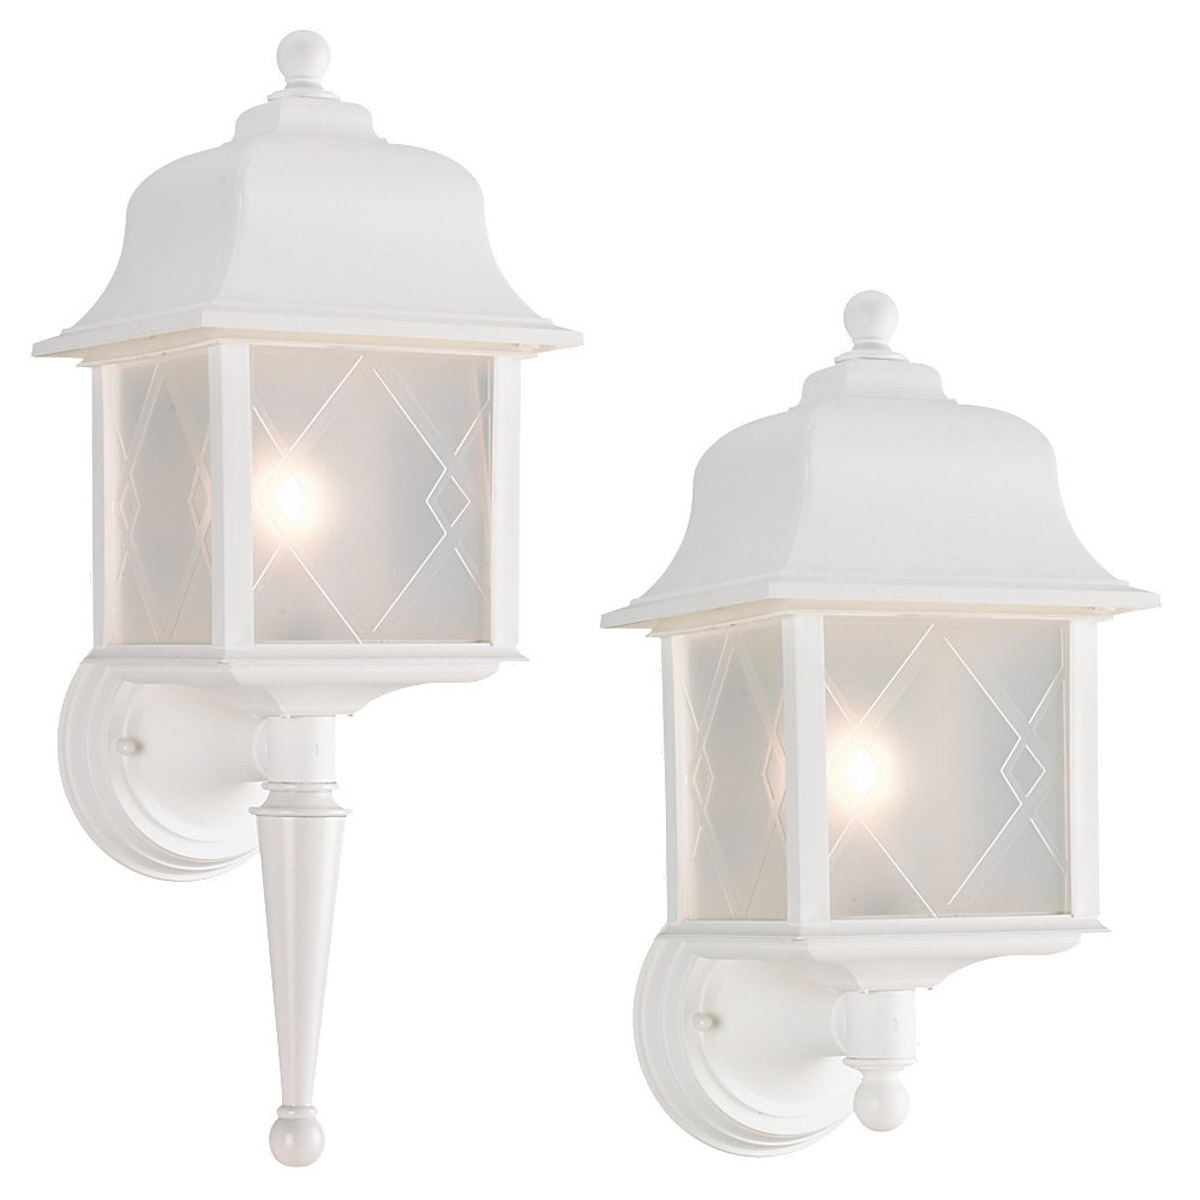 Sea Gull Lighting Harbor Point 1 Light Outdoor Wall Lantern in White 88103-15